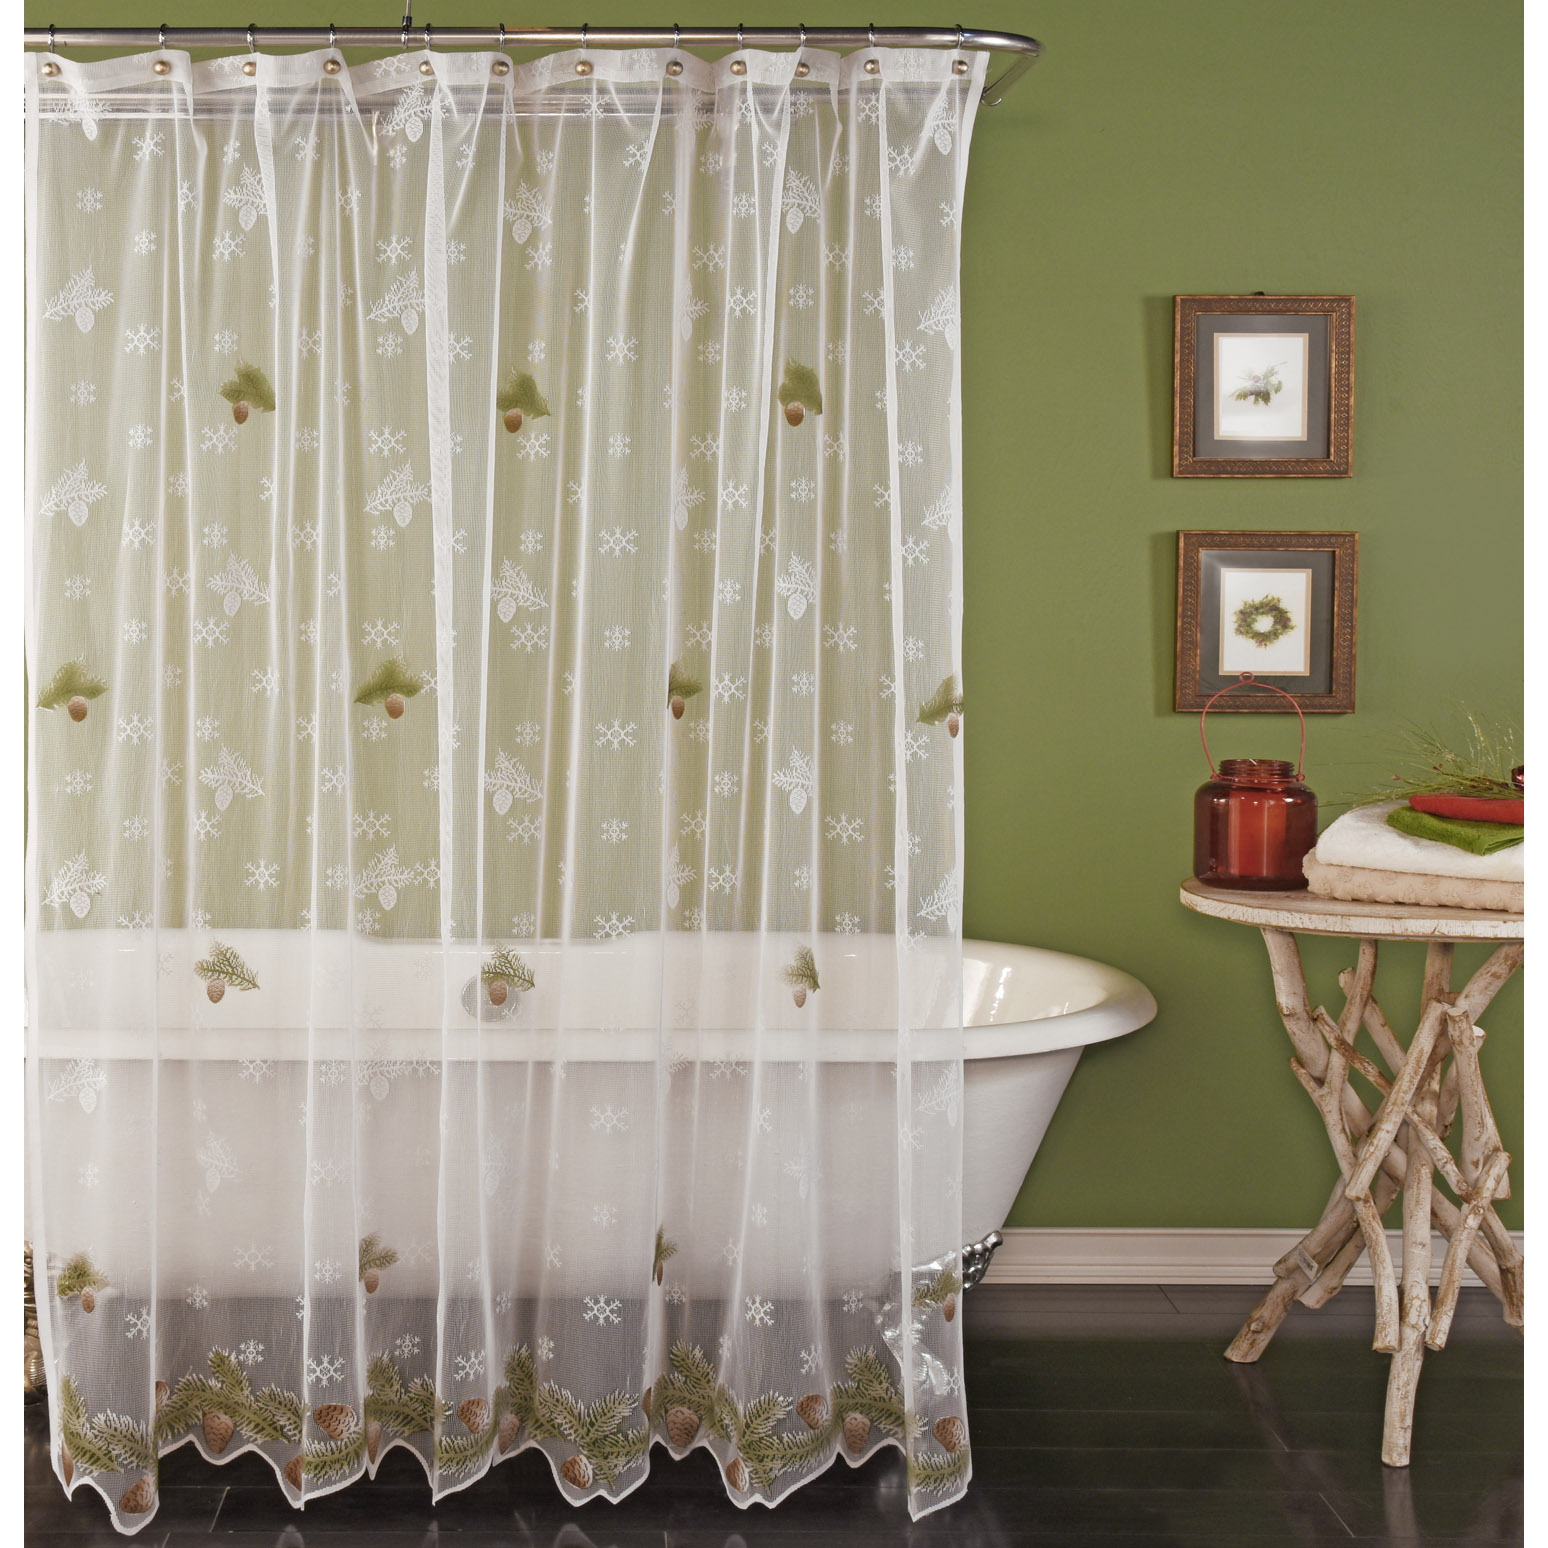 Fabric Shower Curtains Vibrant Fabric Bath Curtains Altmeyers intended for sizing 1548 X 1548